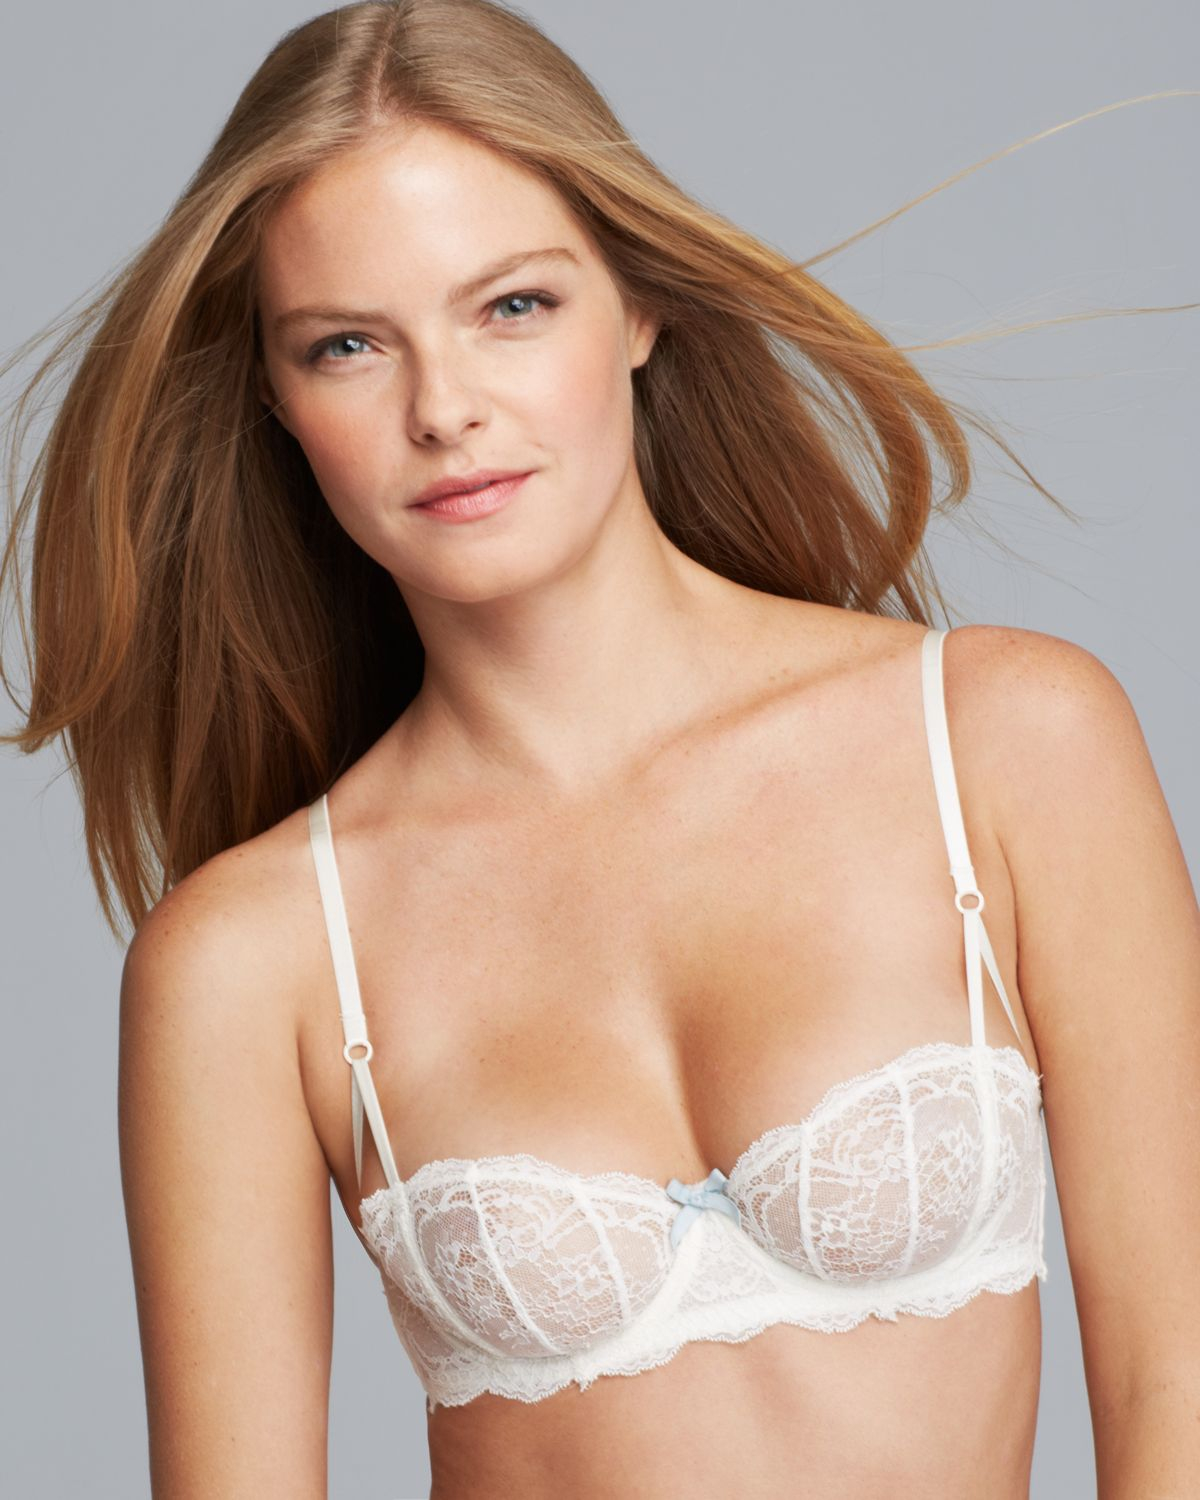 ee2b22fccfe08 Elle Macpherson - White Committed Love Unlined Underwire Bra - Lyst